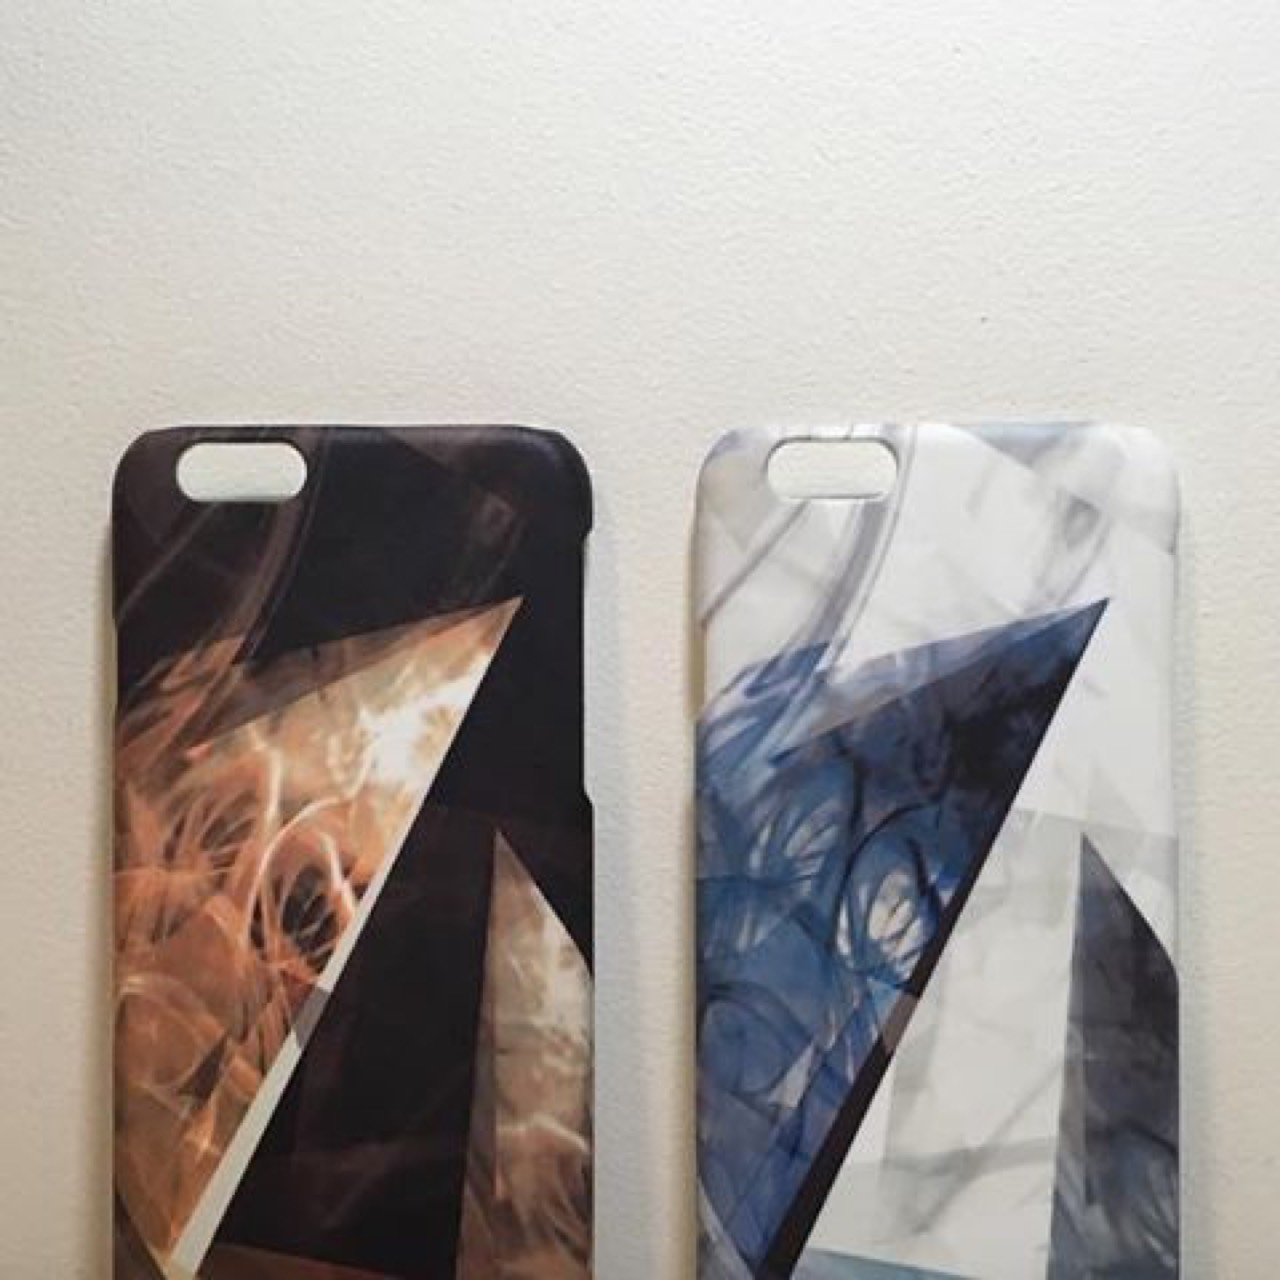 case,arc,arccollective,iphonecase,iphone,phonecase,ipodcase,design,handmade,ARCCollectiveDesign